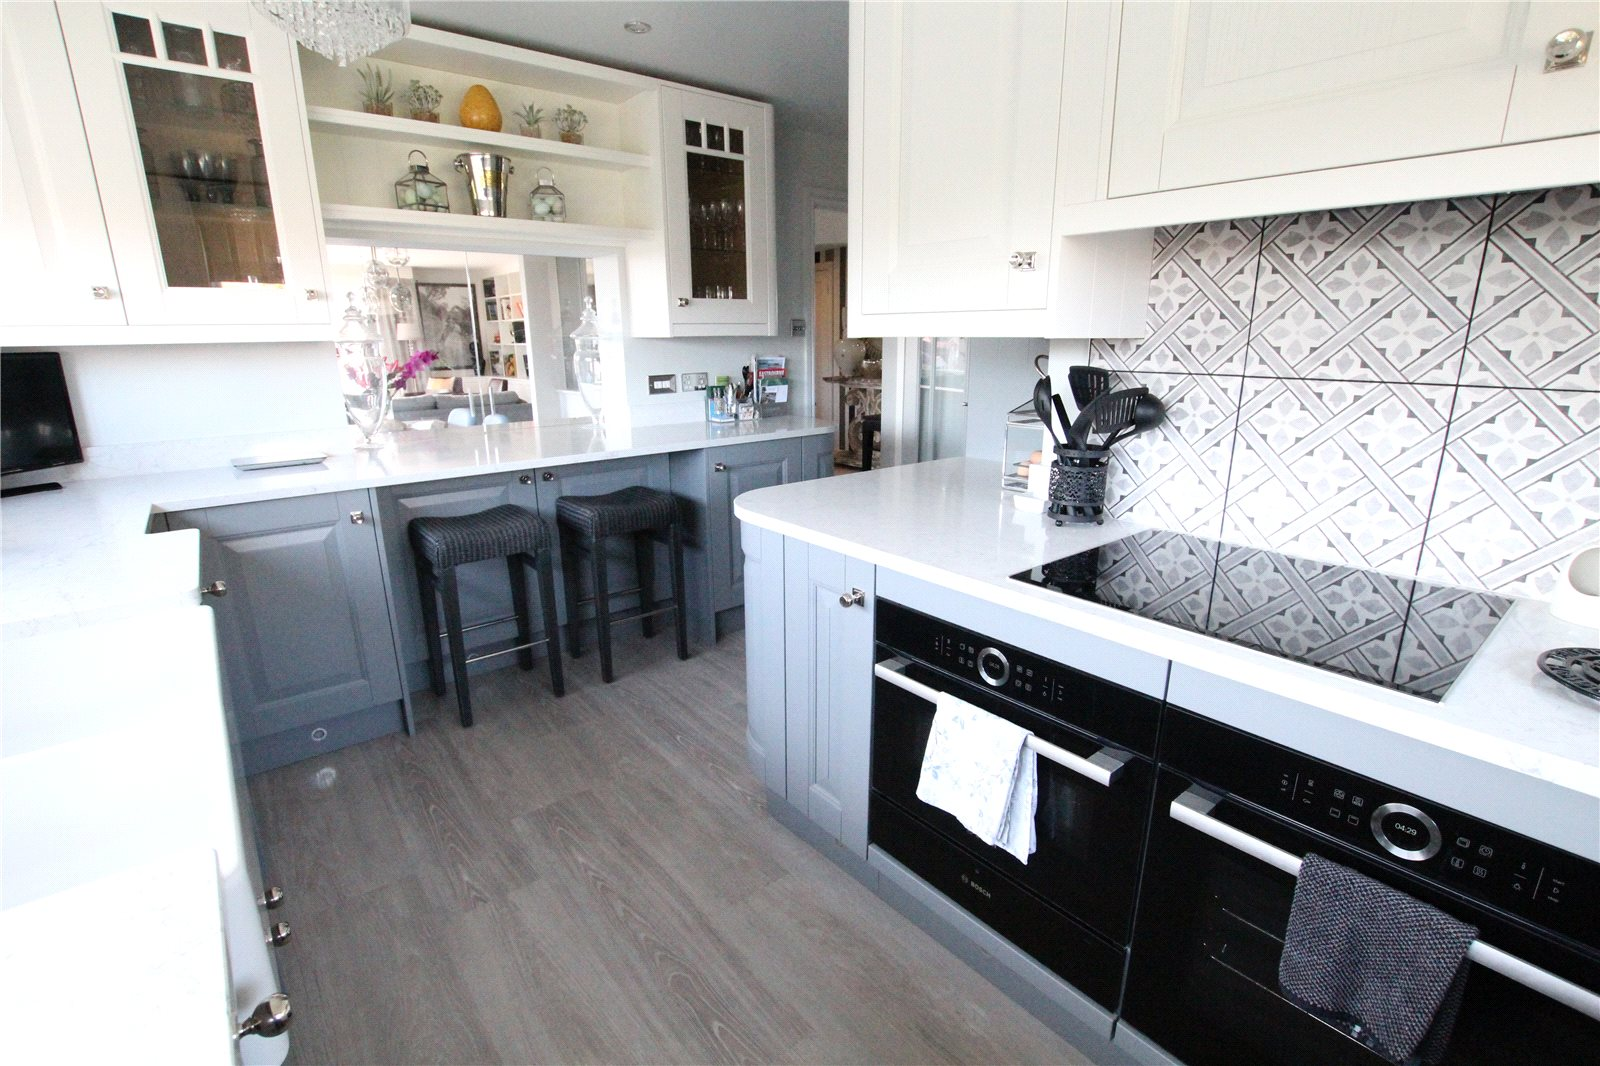 Meadsway, 8 Staveley Road